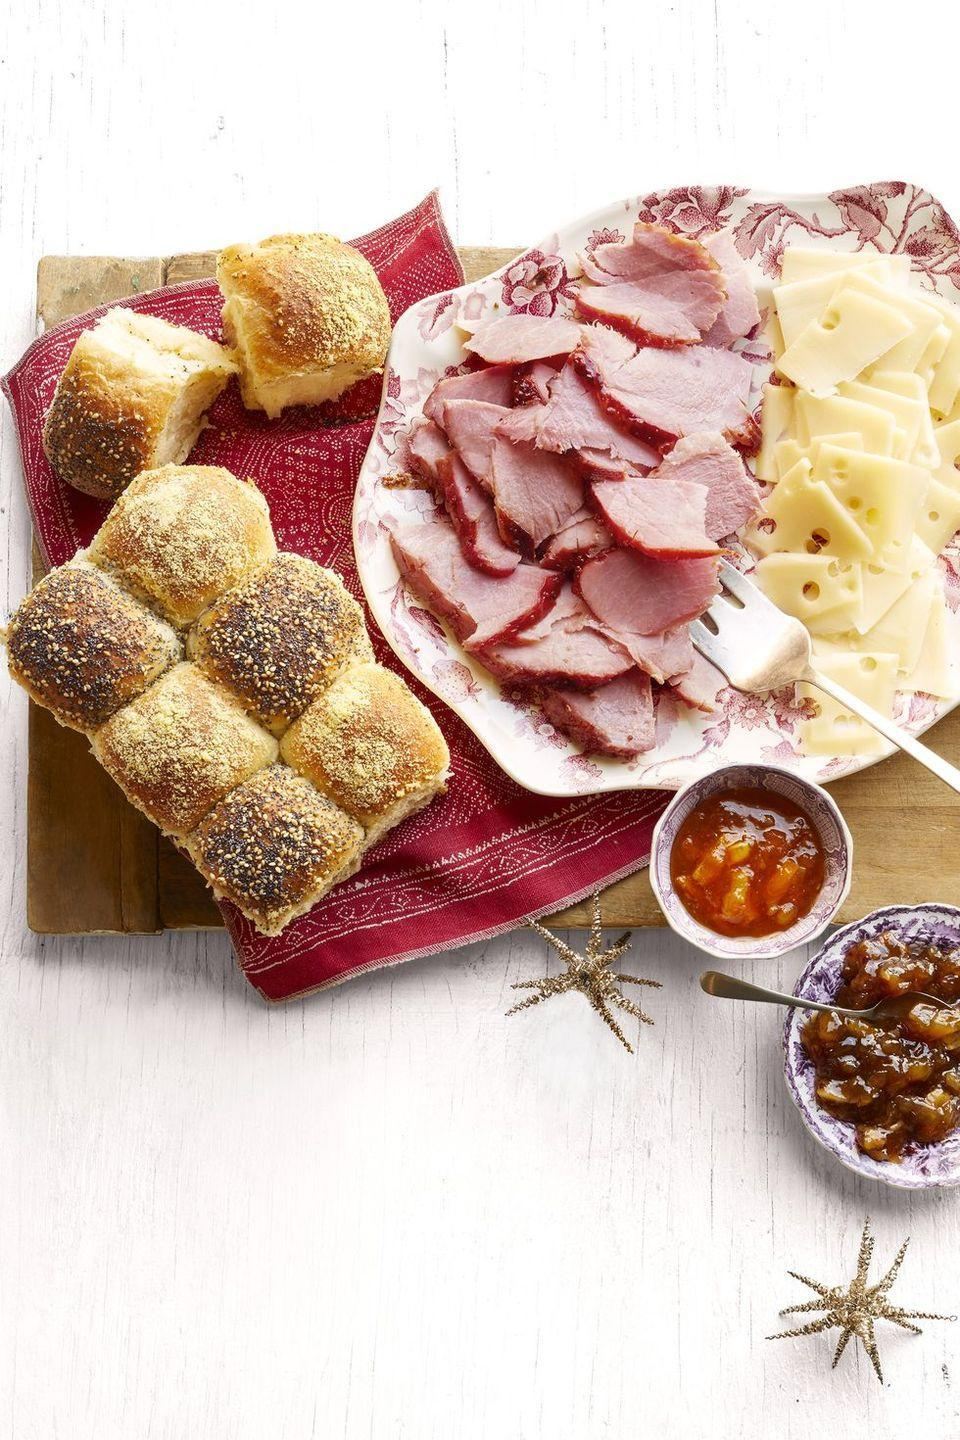 """<p>Turn Thanksgiving ham into a holiday appetizer that's perfect for potlucks and Friendsgiving. Serve it with cheese, jams, and mini sliders. </p><p><a href=""""https://www.thepioneerwoman.com/food-cooking/recipes/a34271871/honey-glazed-ham-and-checkerboard-rolls-recipe/"""" rel=""""nofollow noopener"""" target=""""_blank"""" data-ylk=""""slk:Get Ree's recipe."""" class=""""link rapid-noclick-resp""""><strong>Get Ree's recipe.</strong></a></p>"""